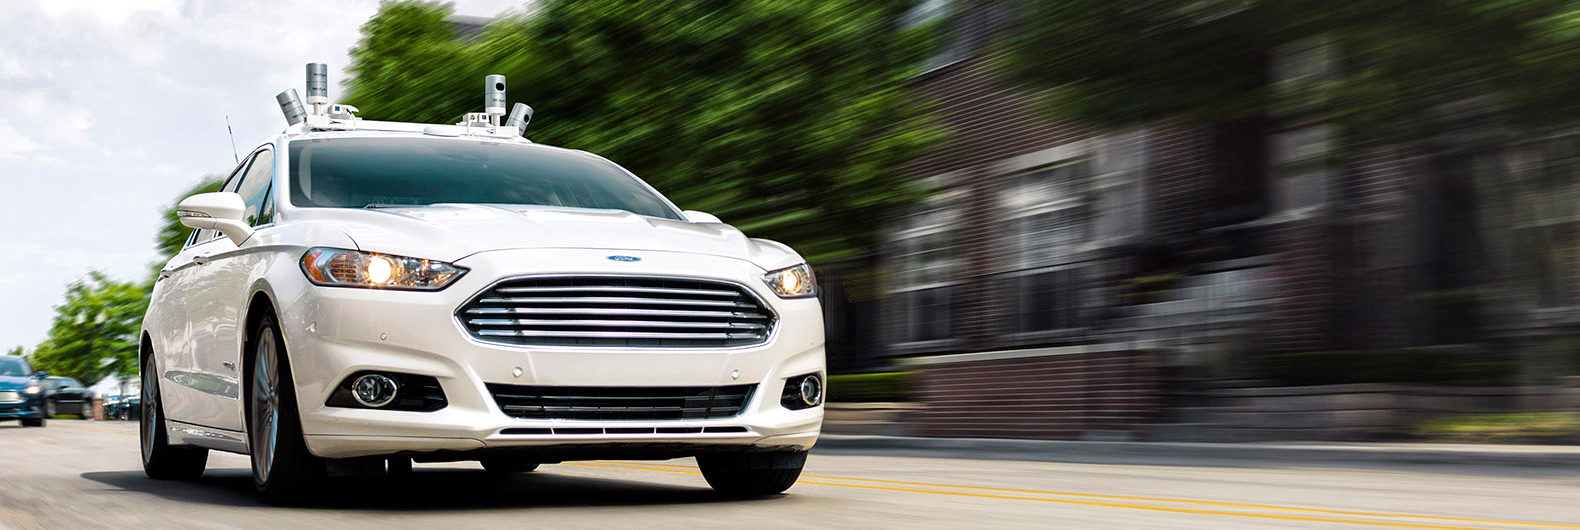 ford s self driving car will have no steering wheel gas pedal or brakes inhabitat green. Black Bedroom Furniture Sets. Home Design Ideas